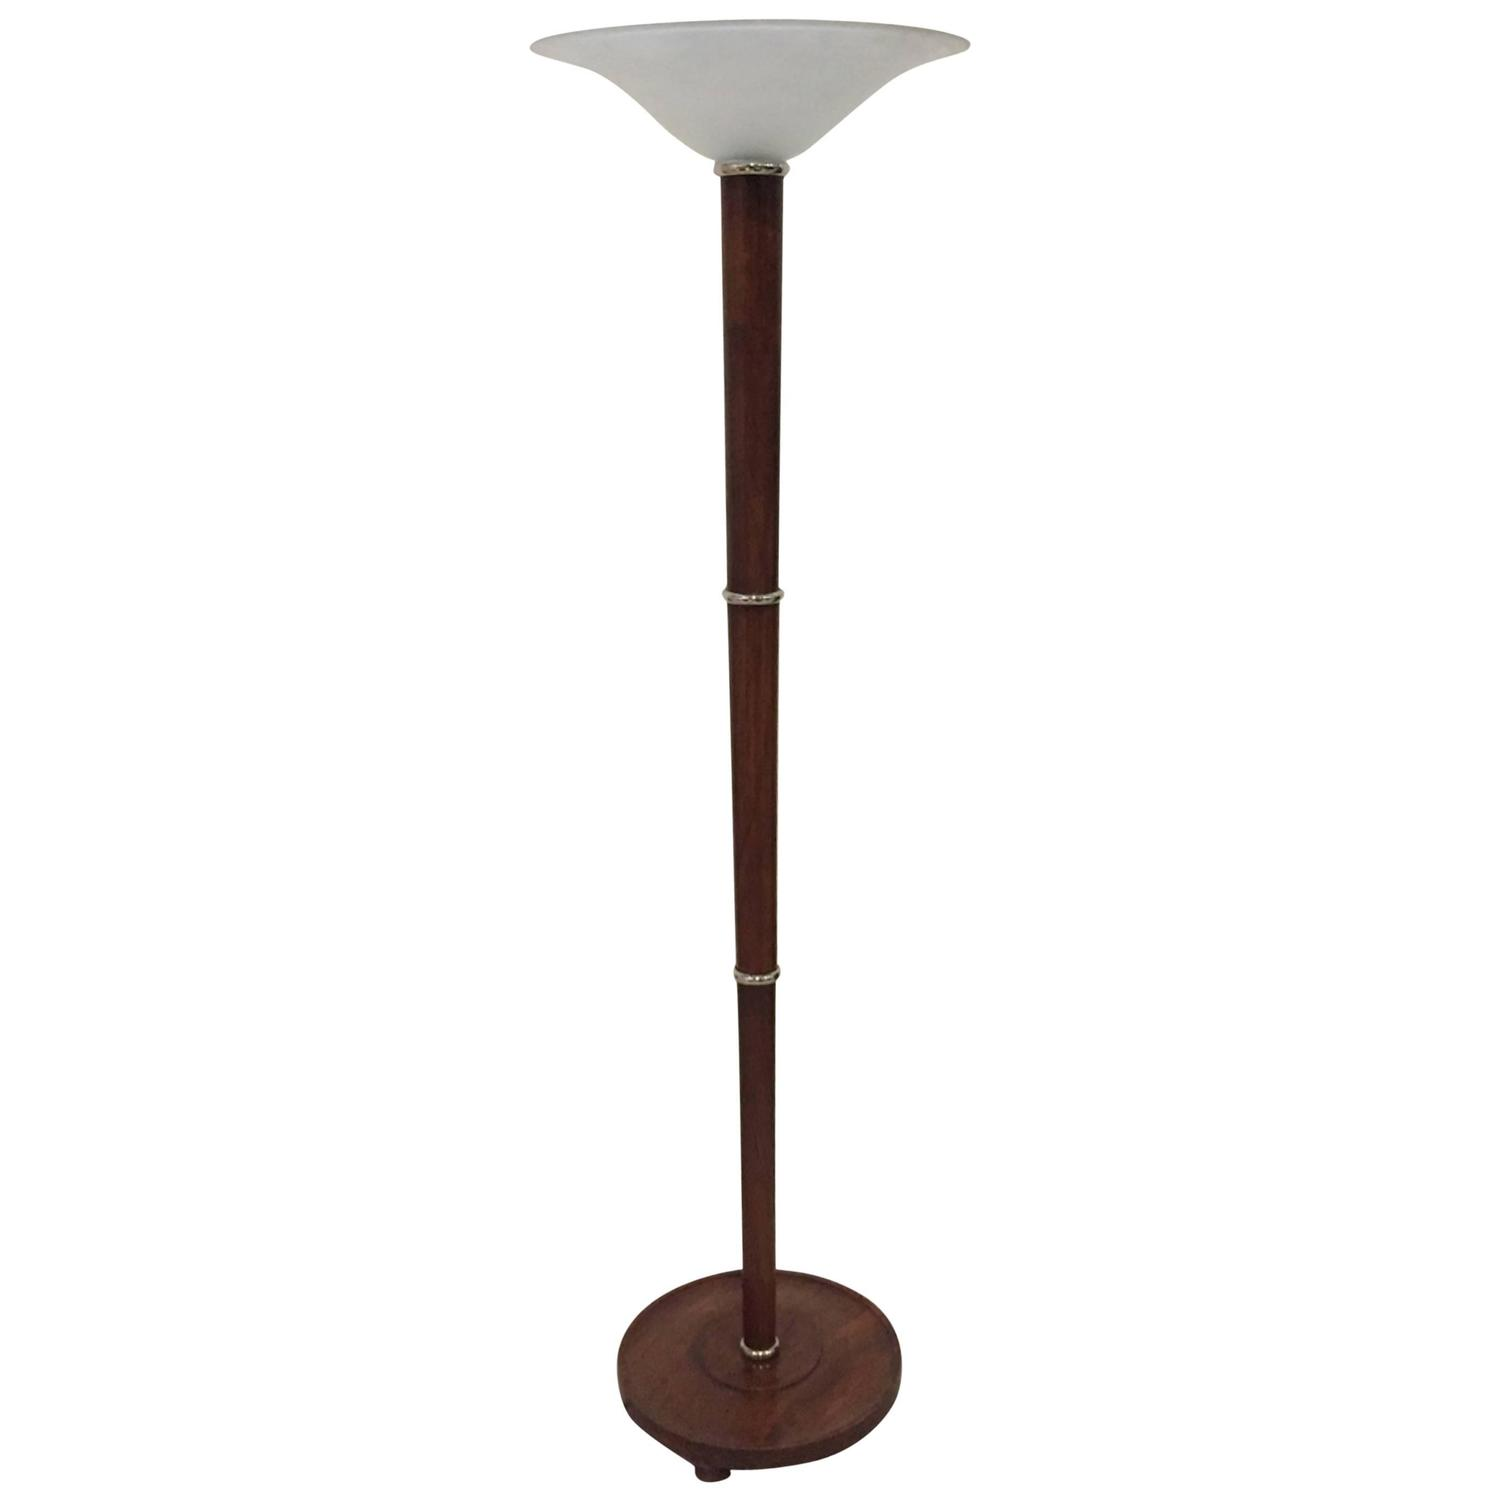 French Art Deco Figured Wood And Bronze Floor Lamp Torchiere For At 1stdibs